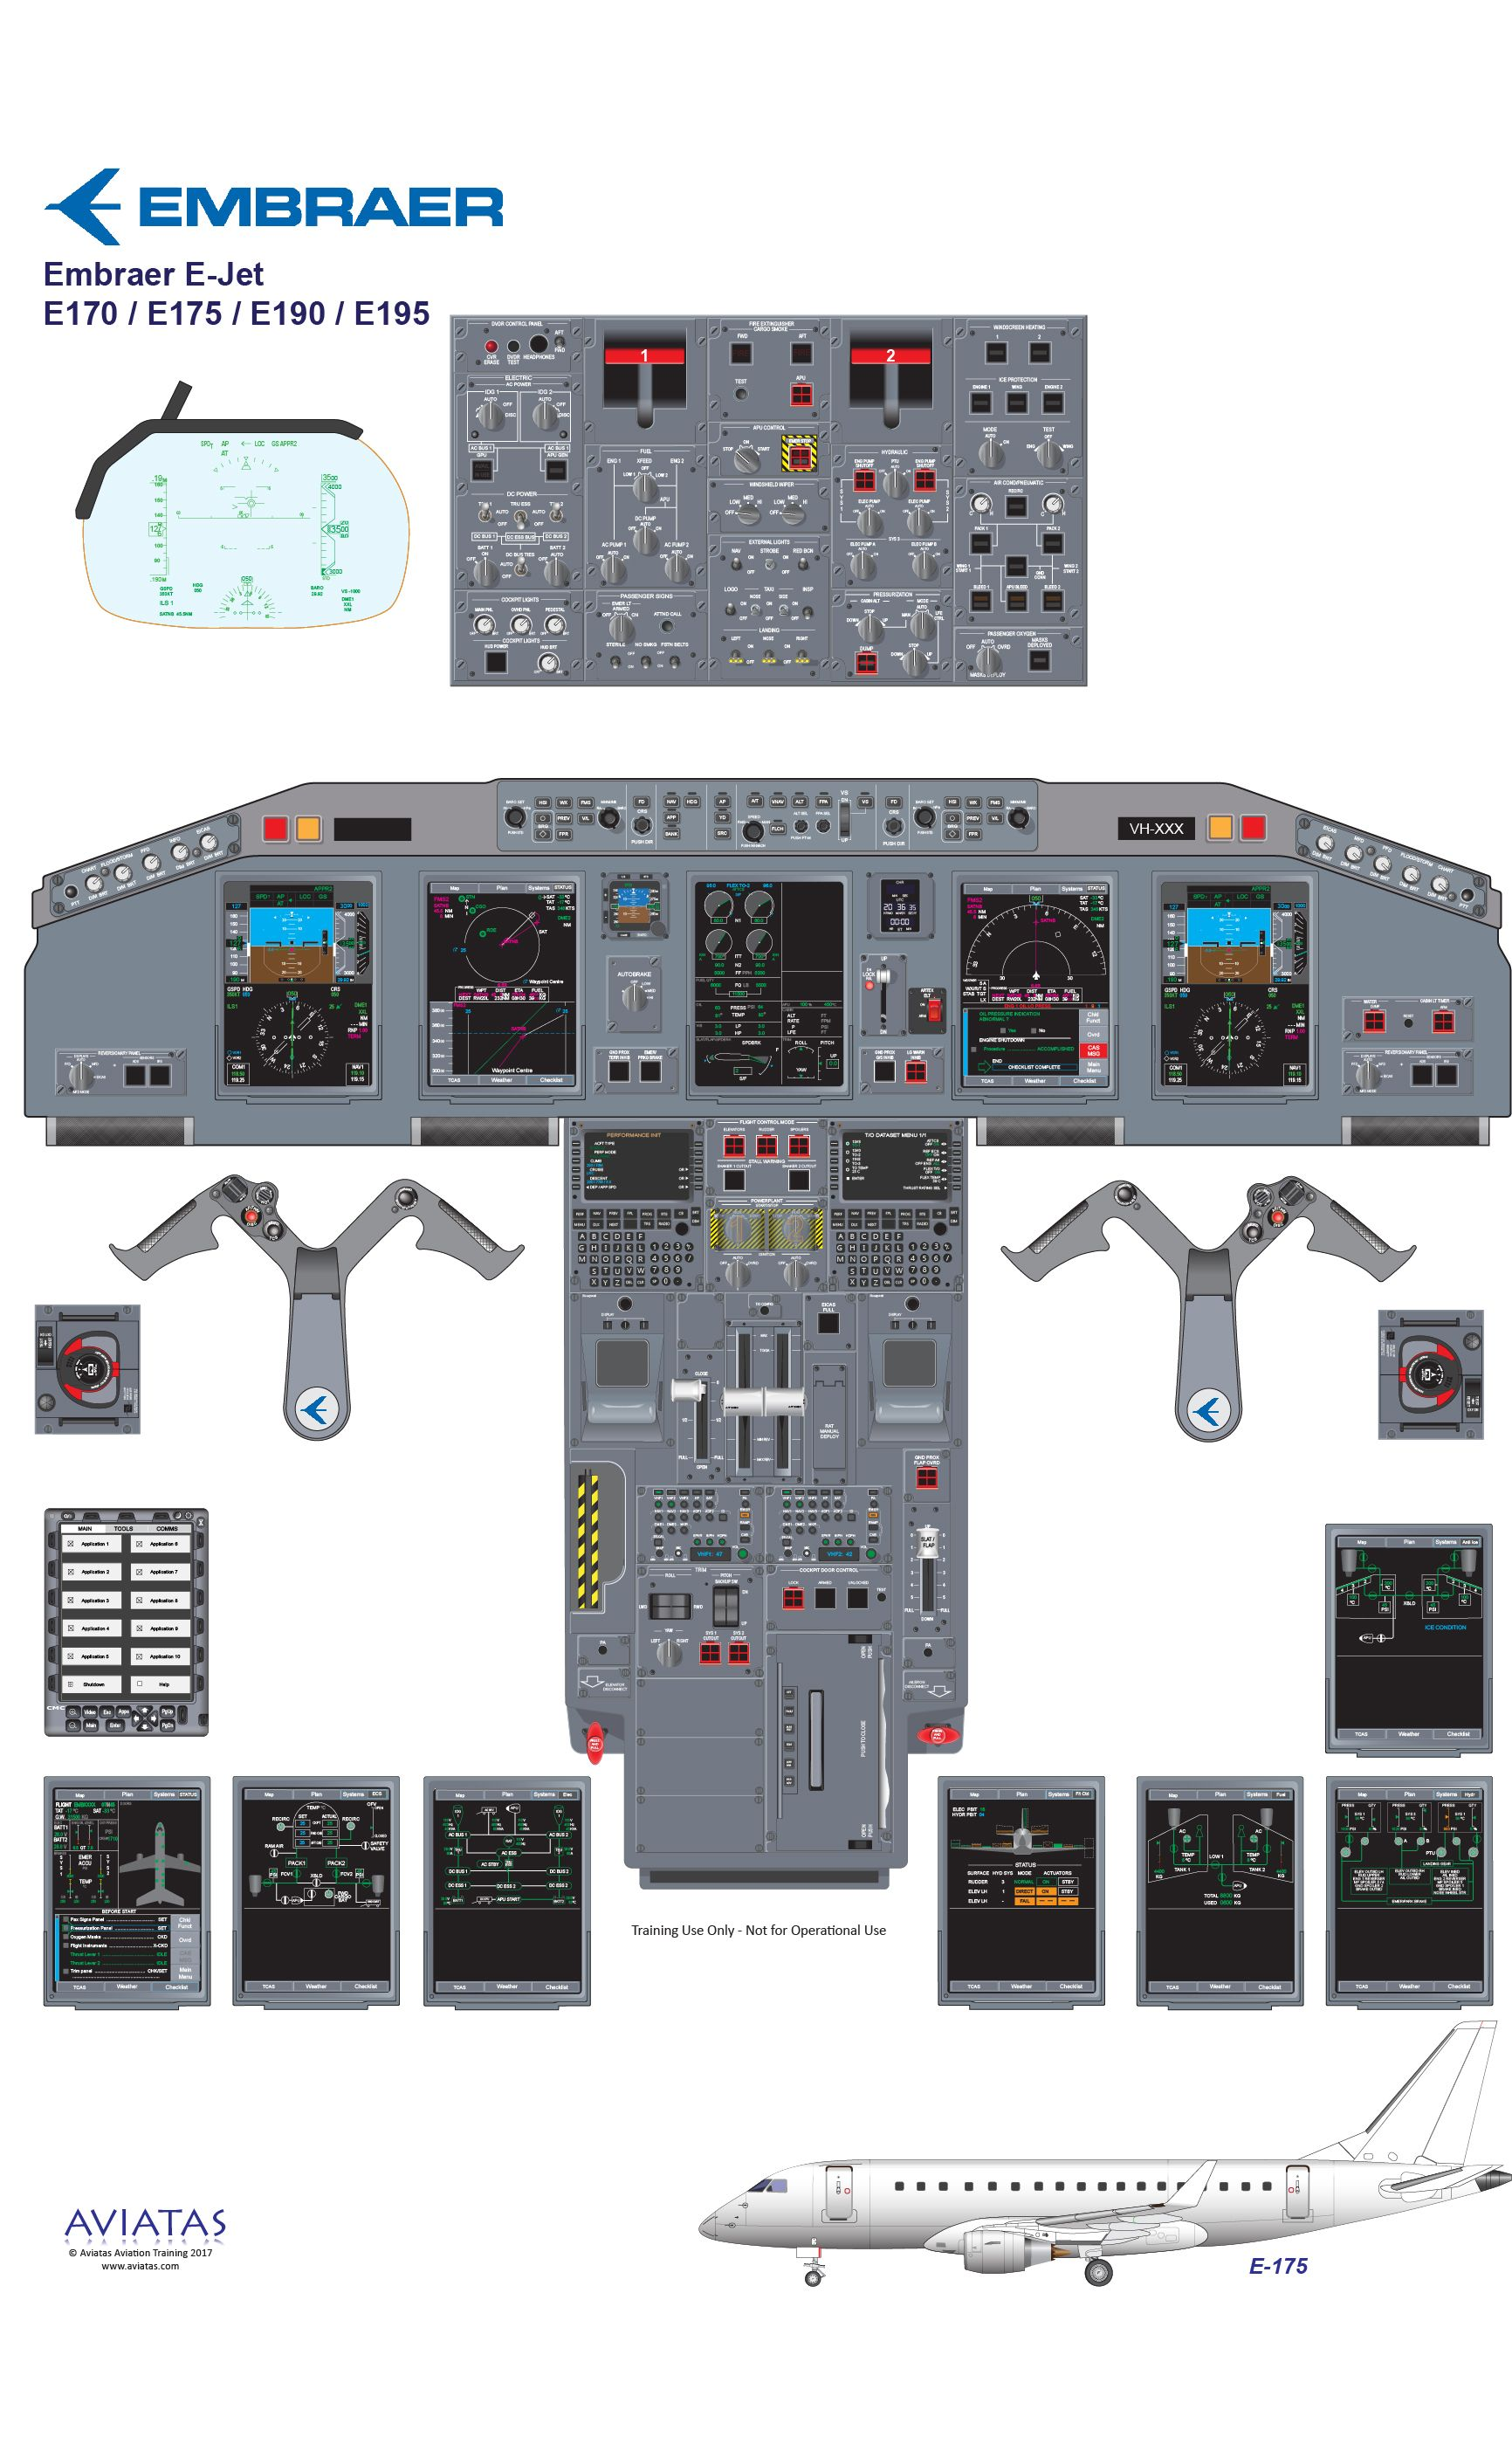 Wiring Diagram Symbols Embraer Trusted Aircraft E Jet E170 175 190 195 Cockpit Training Rh Pinterest Com Electrical Schematic For Blueprints